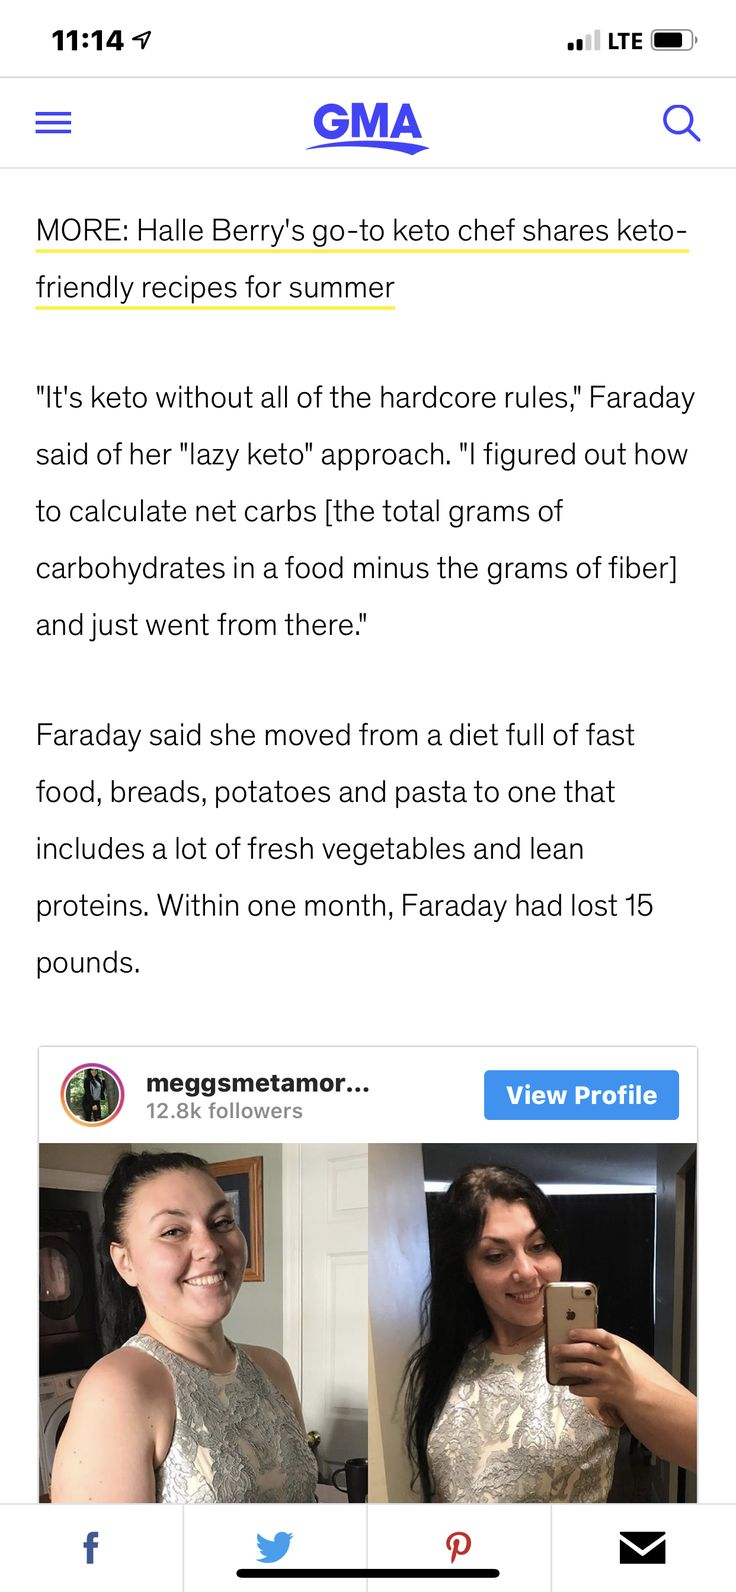 Pin by SHEL HUFF on Eat This! in 2020 Keto, A food